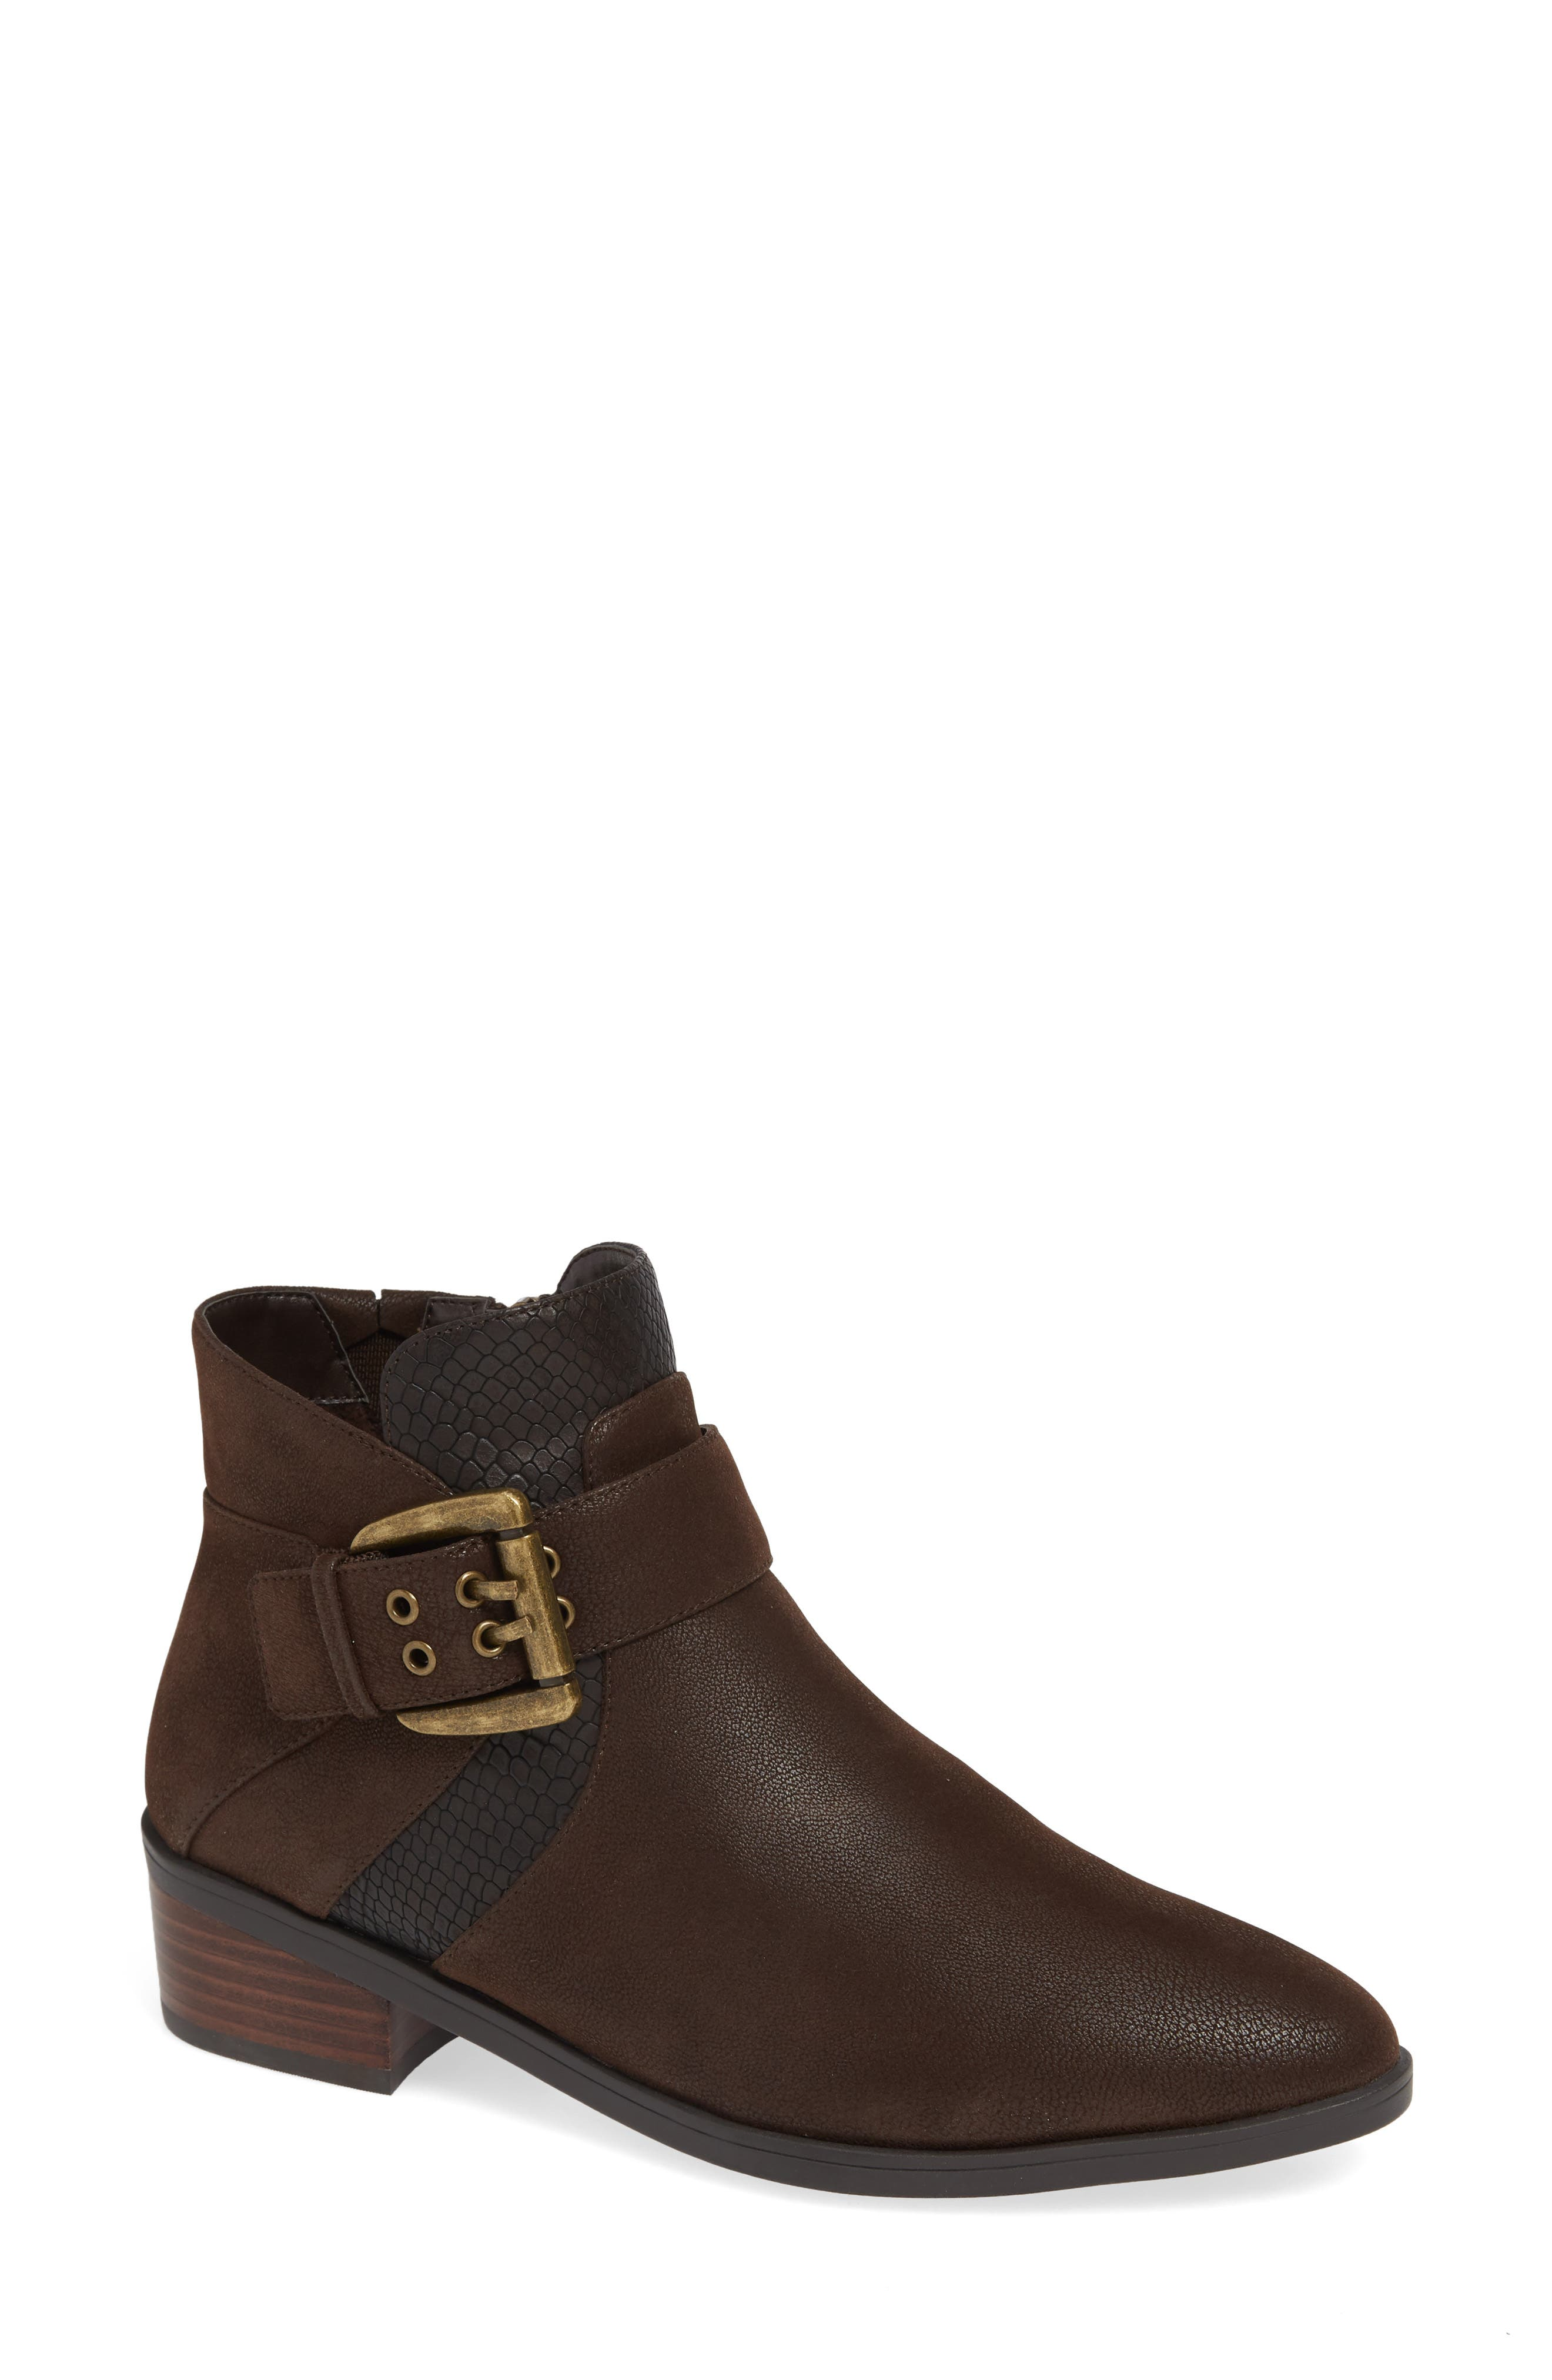 Bella Vita Honor Ii Bootie, Brown